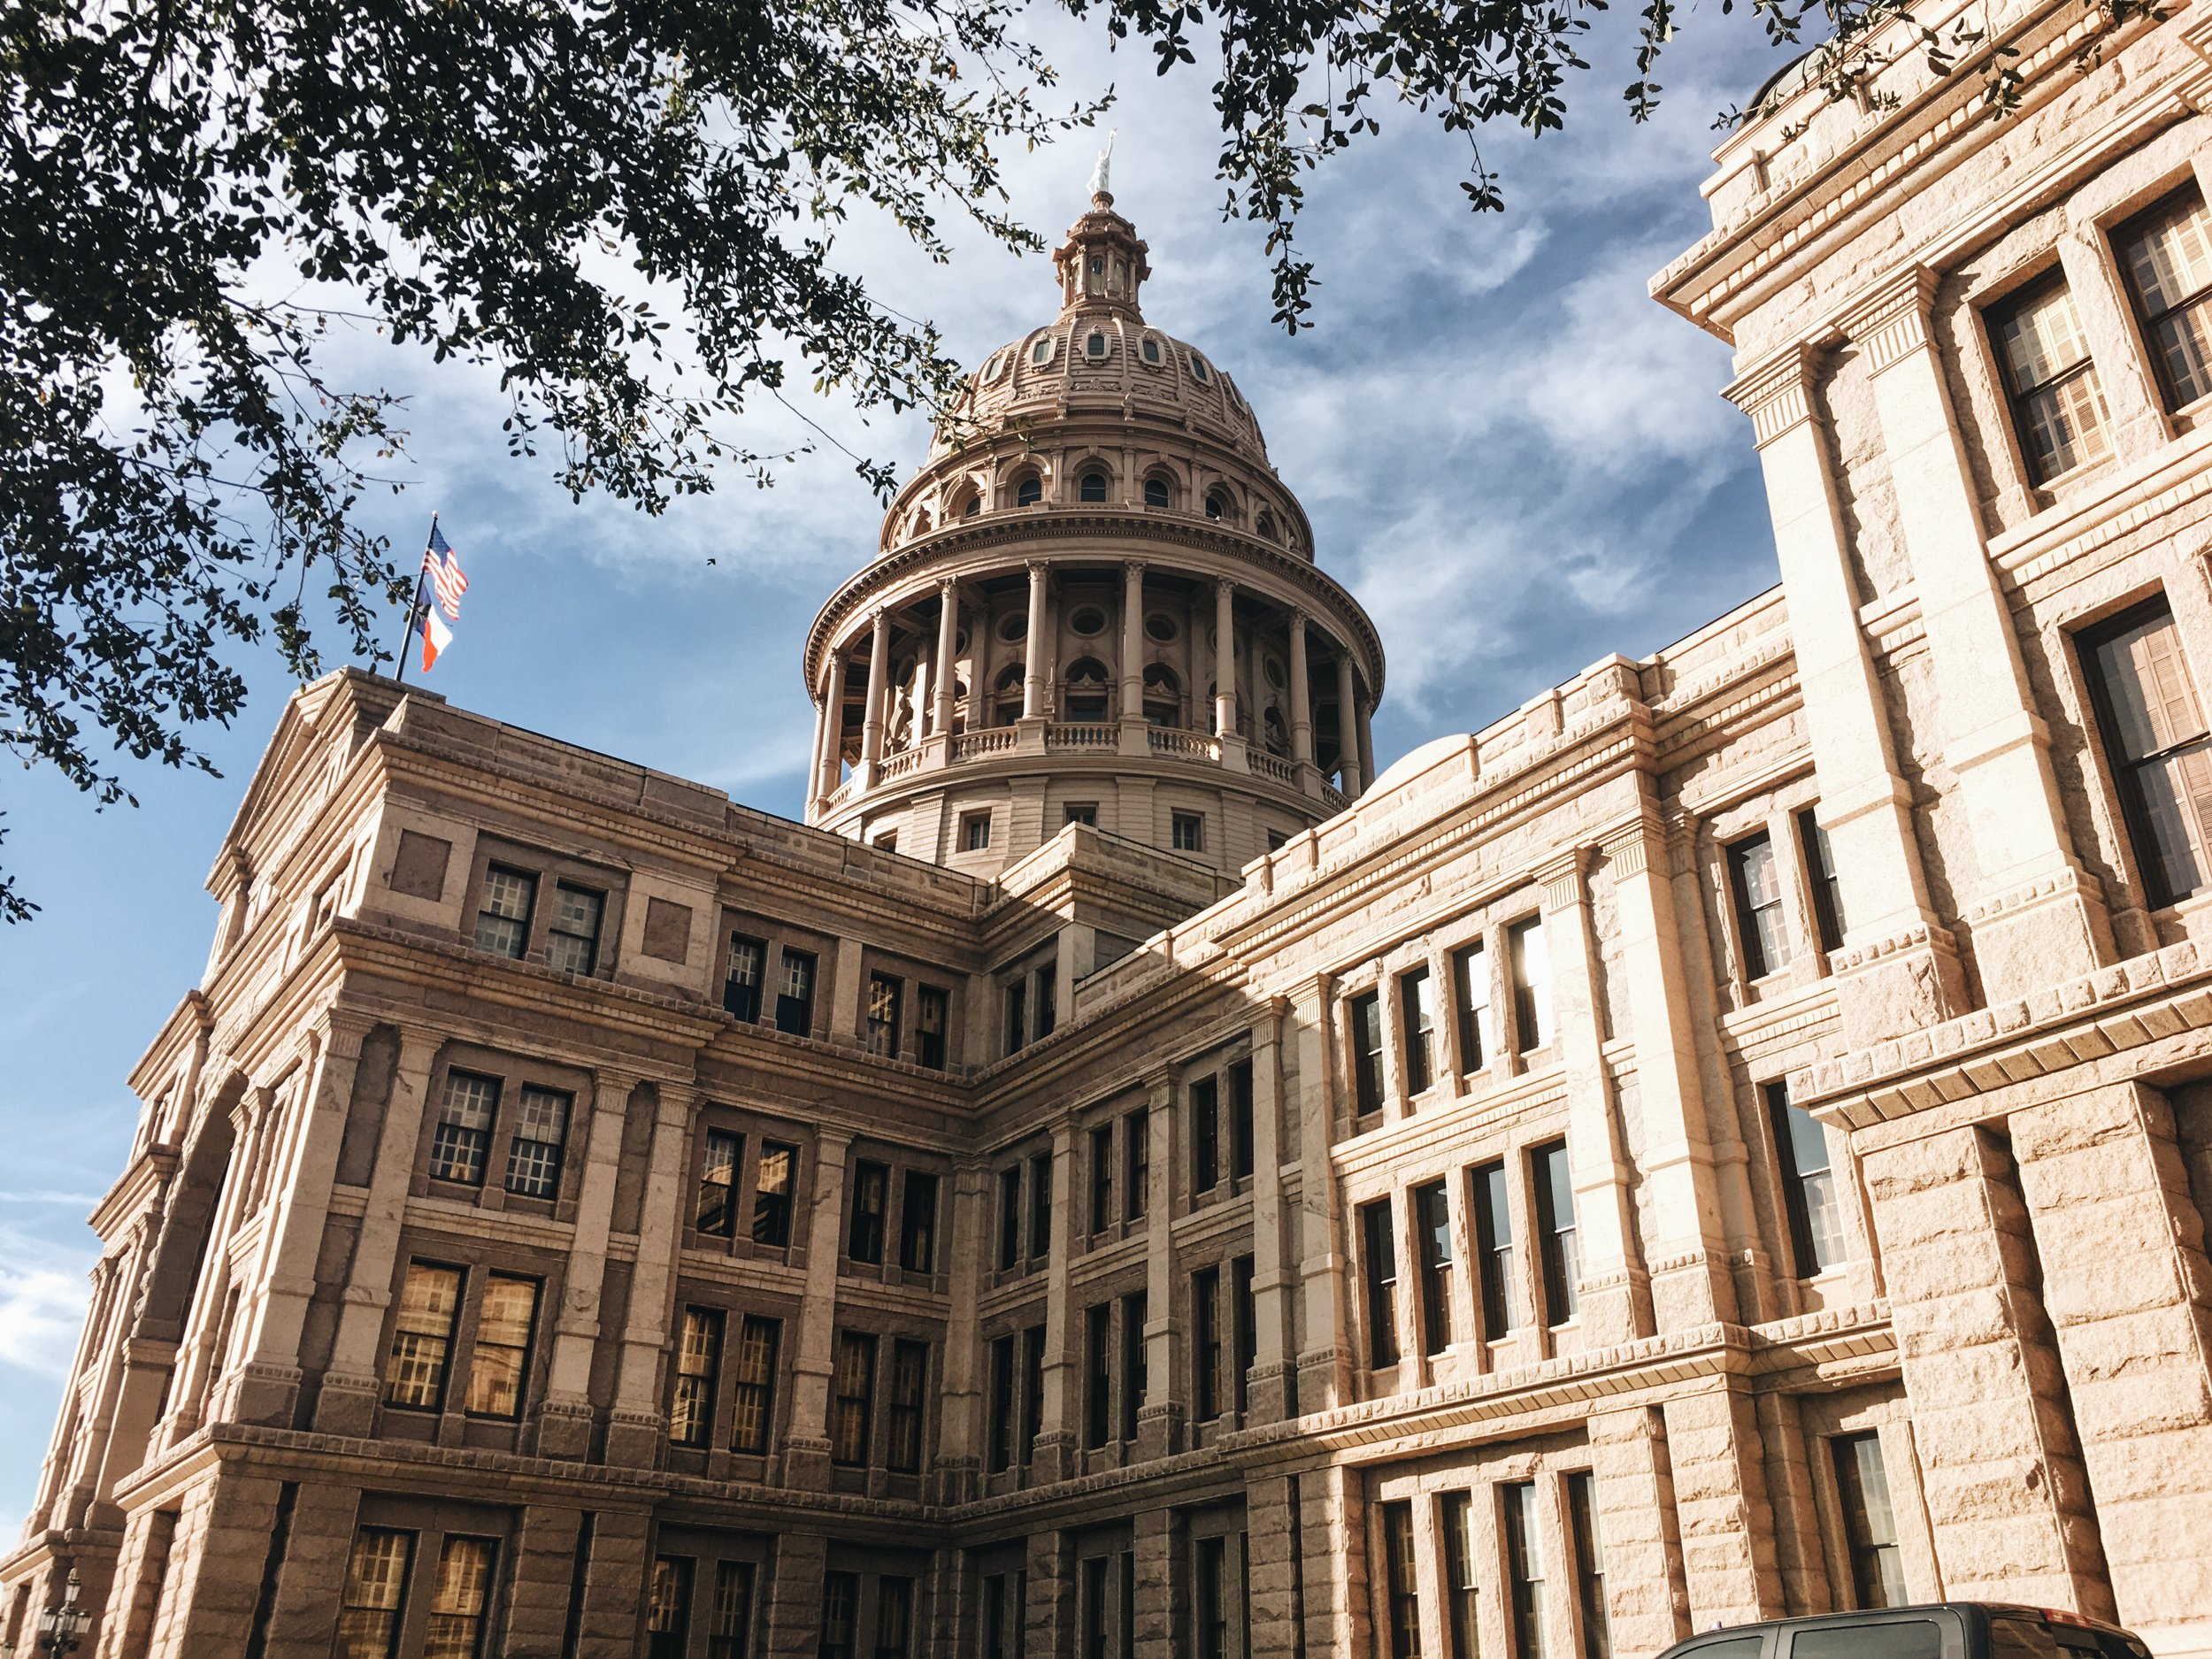 Things_to_see_The_State_Capital_in_Austin_Texas_travel_tips_by_Chanel_G_Photography